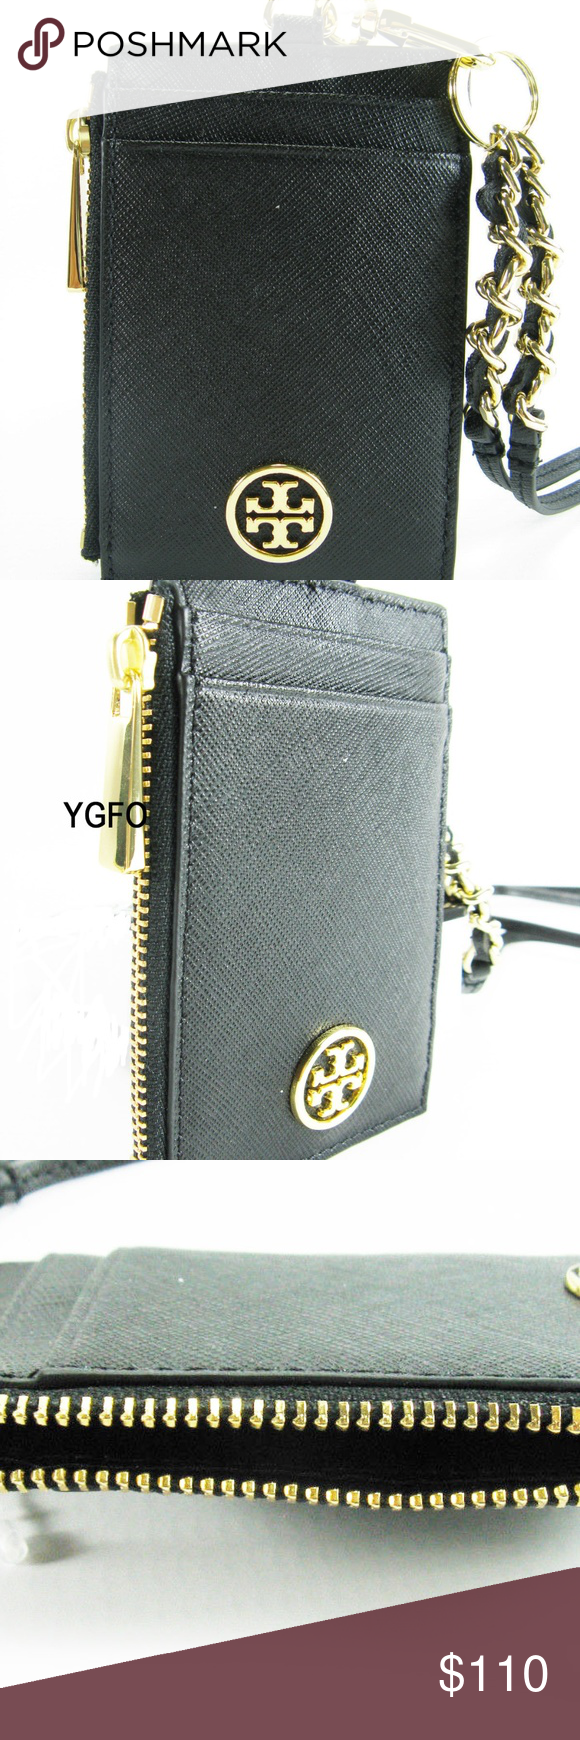 21a9204670c1 NWT Tory Burch Robinson Black Leather Lanyard NWT TORY BURCH LANYARD ID  Holder CREDIT CARD Case Wallet Black SAFFIANO LEATHER Robinson Lanyard and  Mini ...